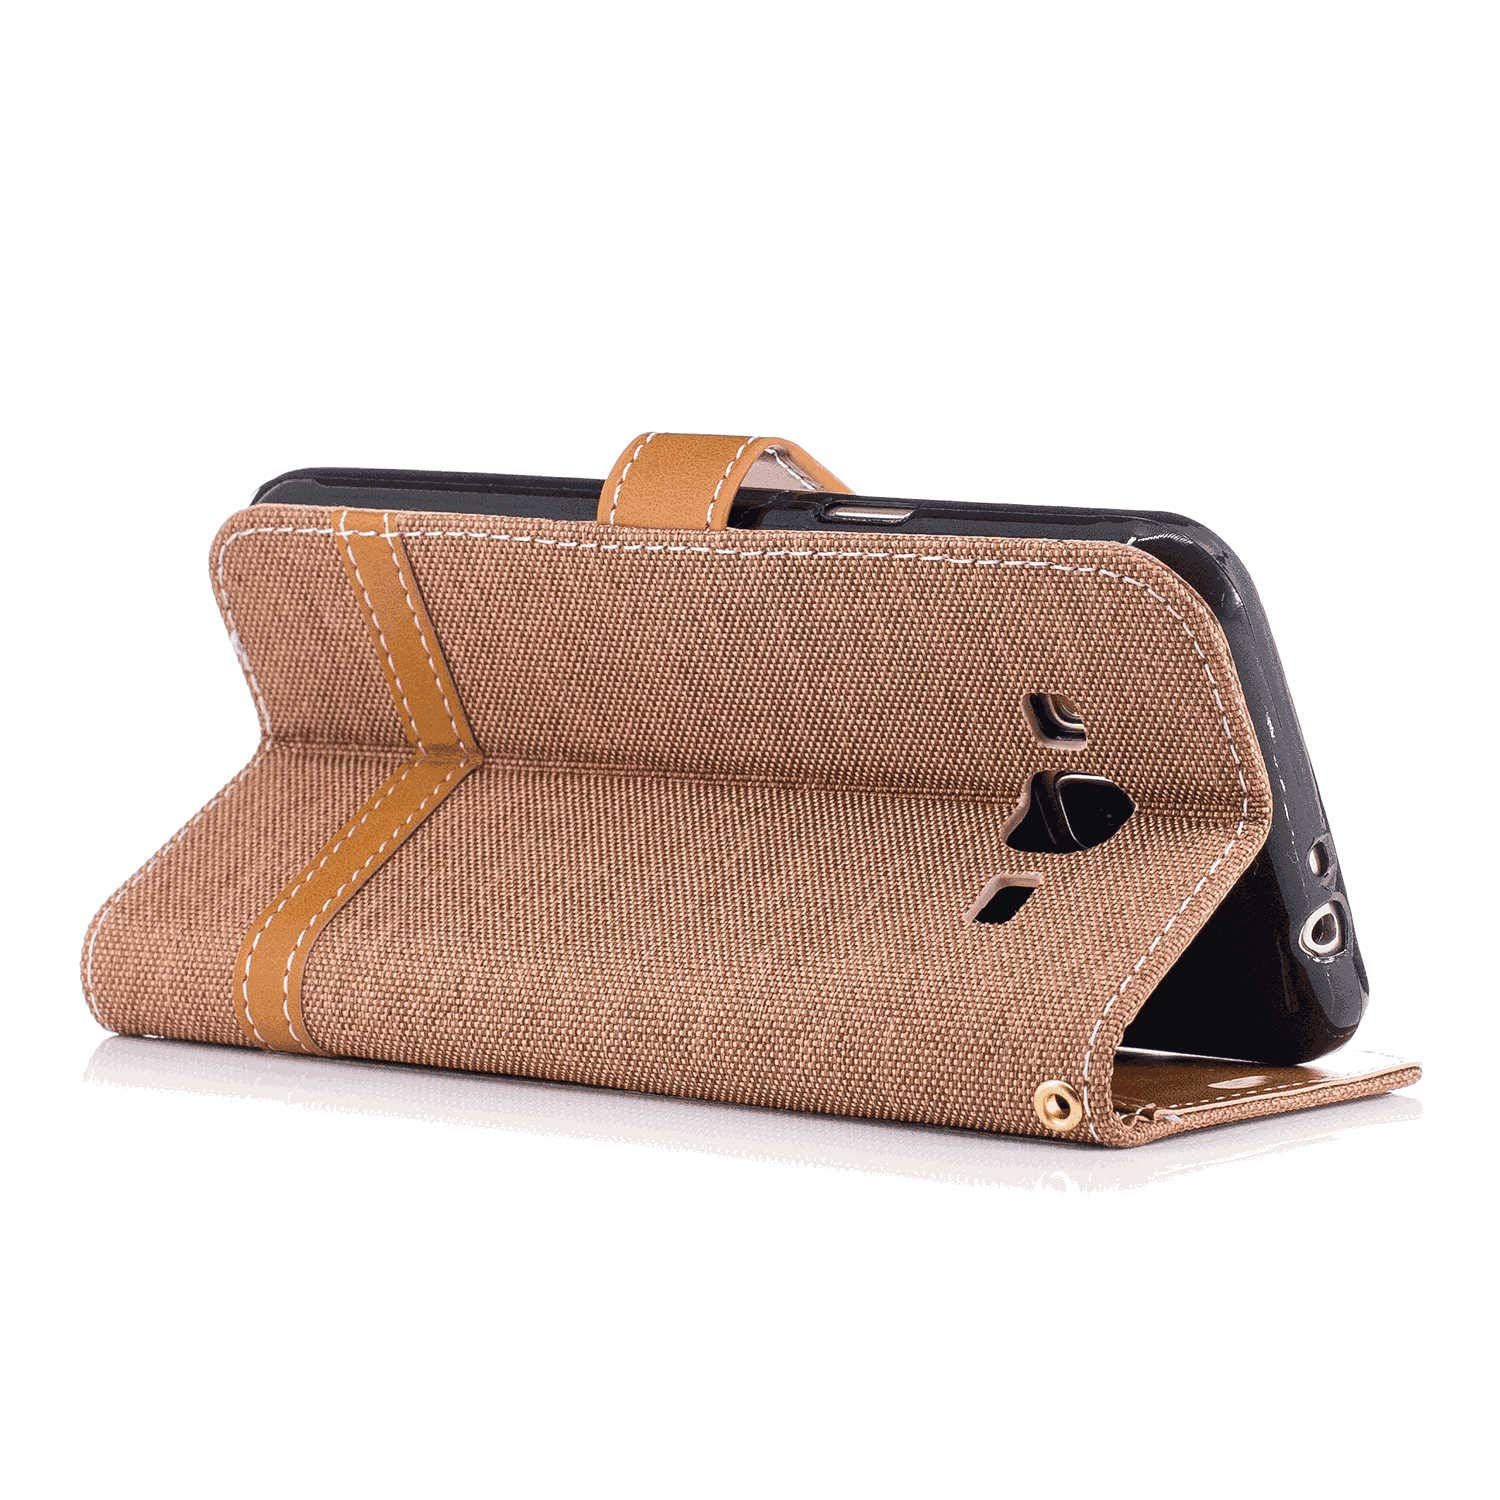 Leather Cover Business Gifts Wallet with Extra Waterproof Underwater Case Flip Case for iPhone X